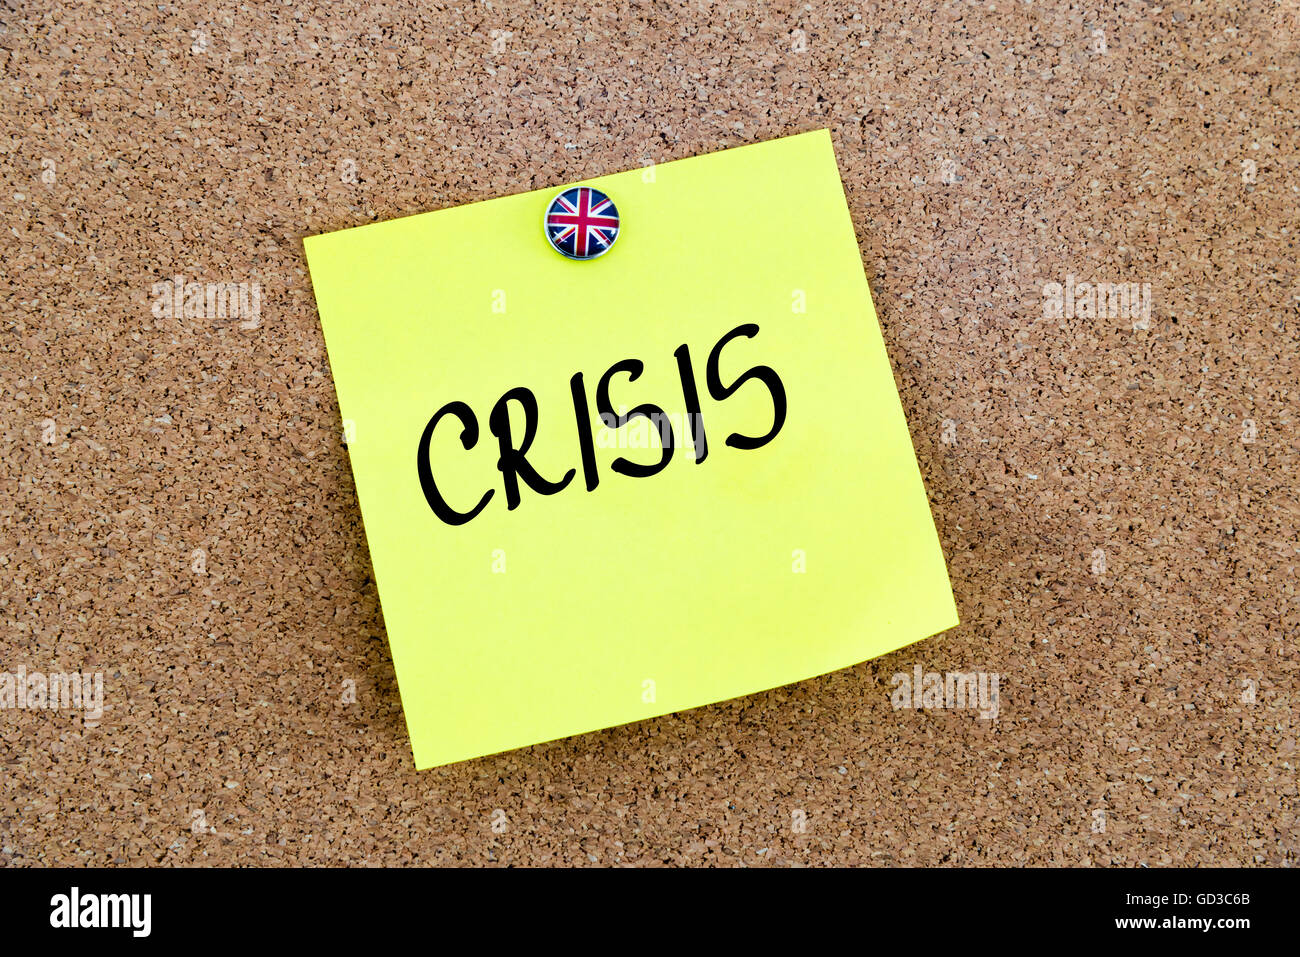 Yellow paper note pinned on cork board with Great Britain flag thumbtack, written text CRISIS, United Kingdom exit - Stock Image